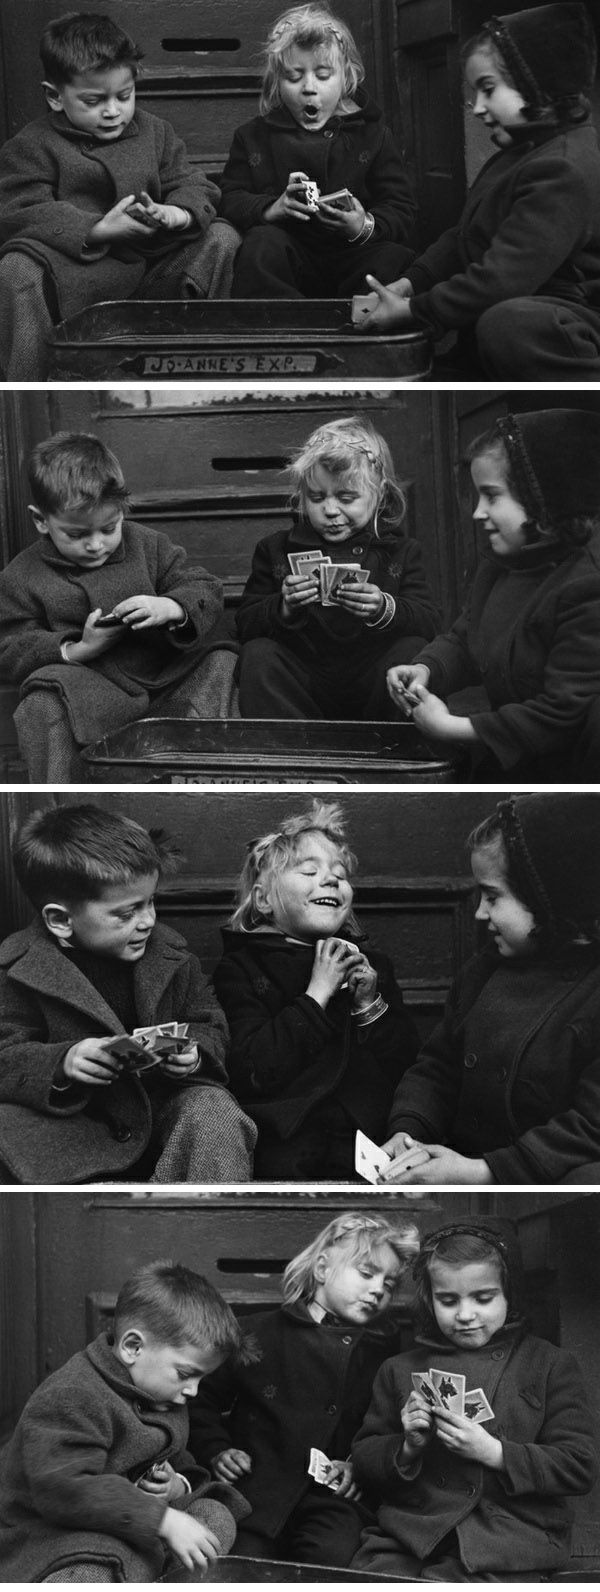 """The Cardplayers"" by Ruth Orkin :: New York City in 1943"